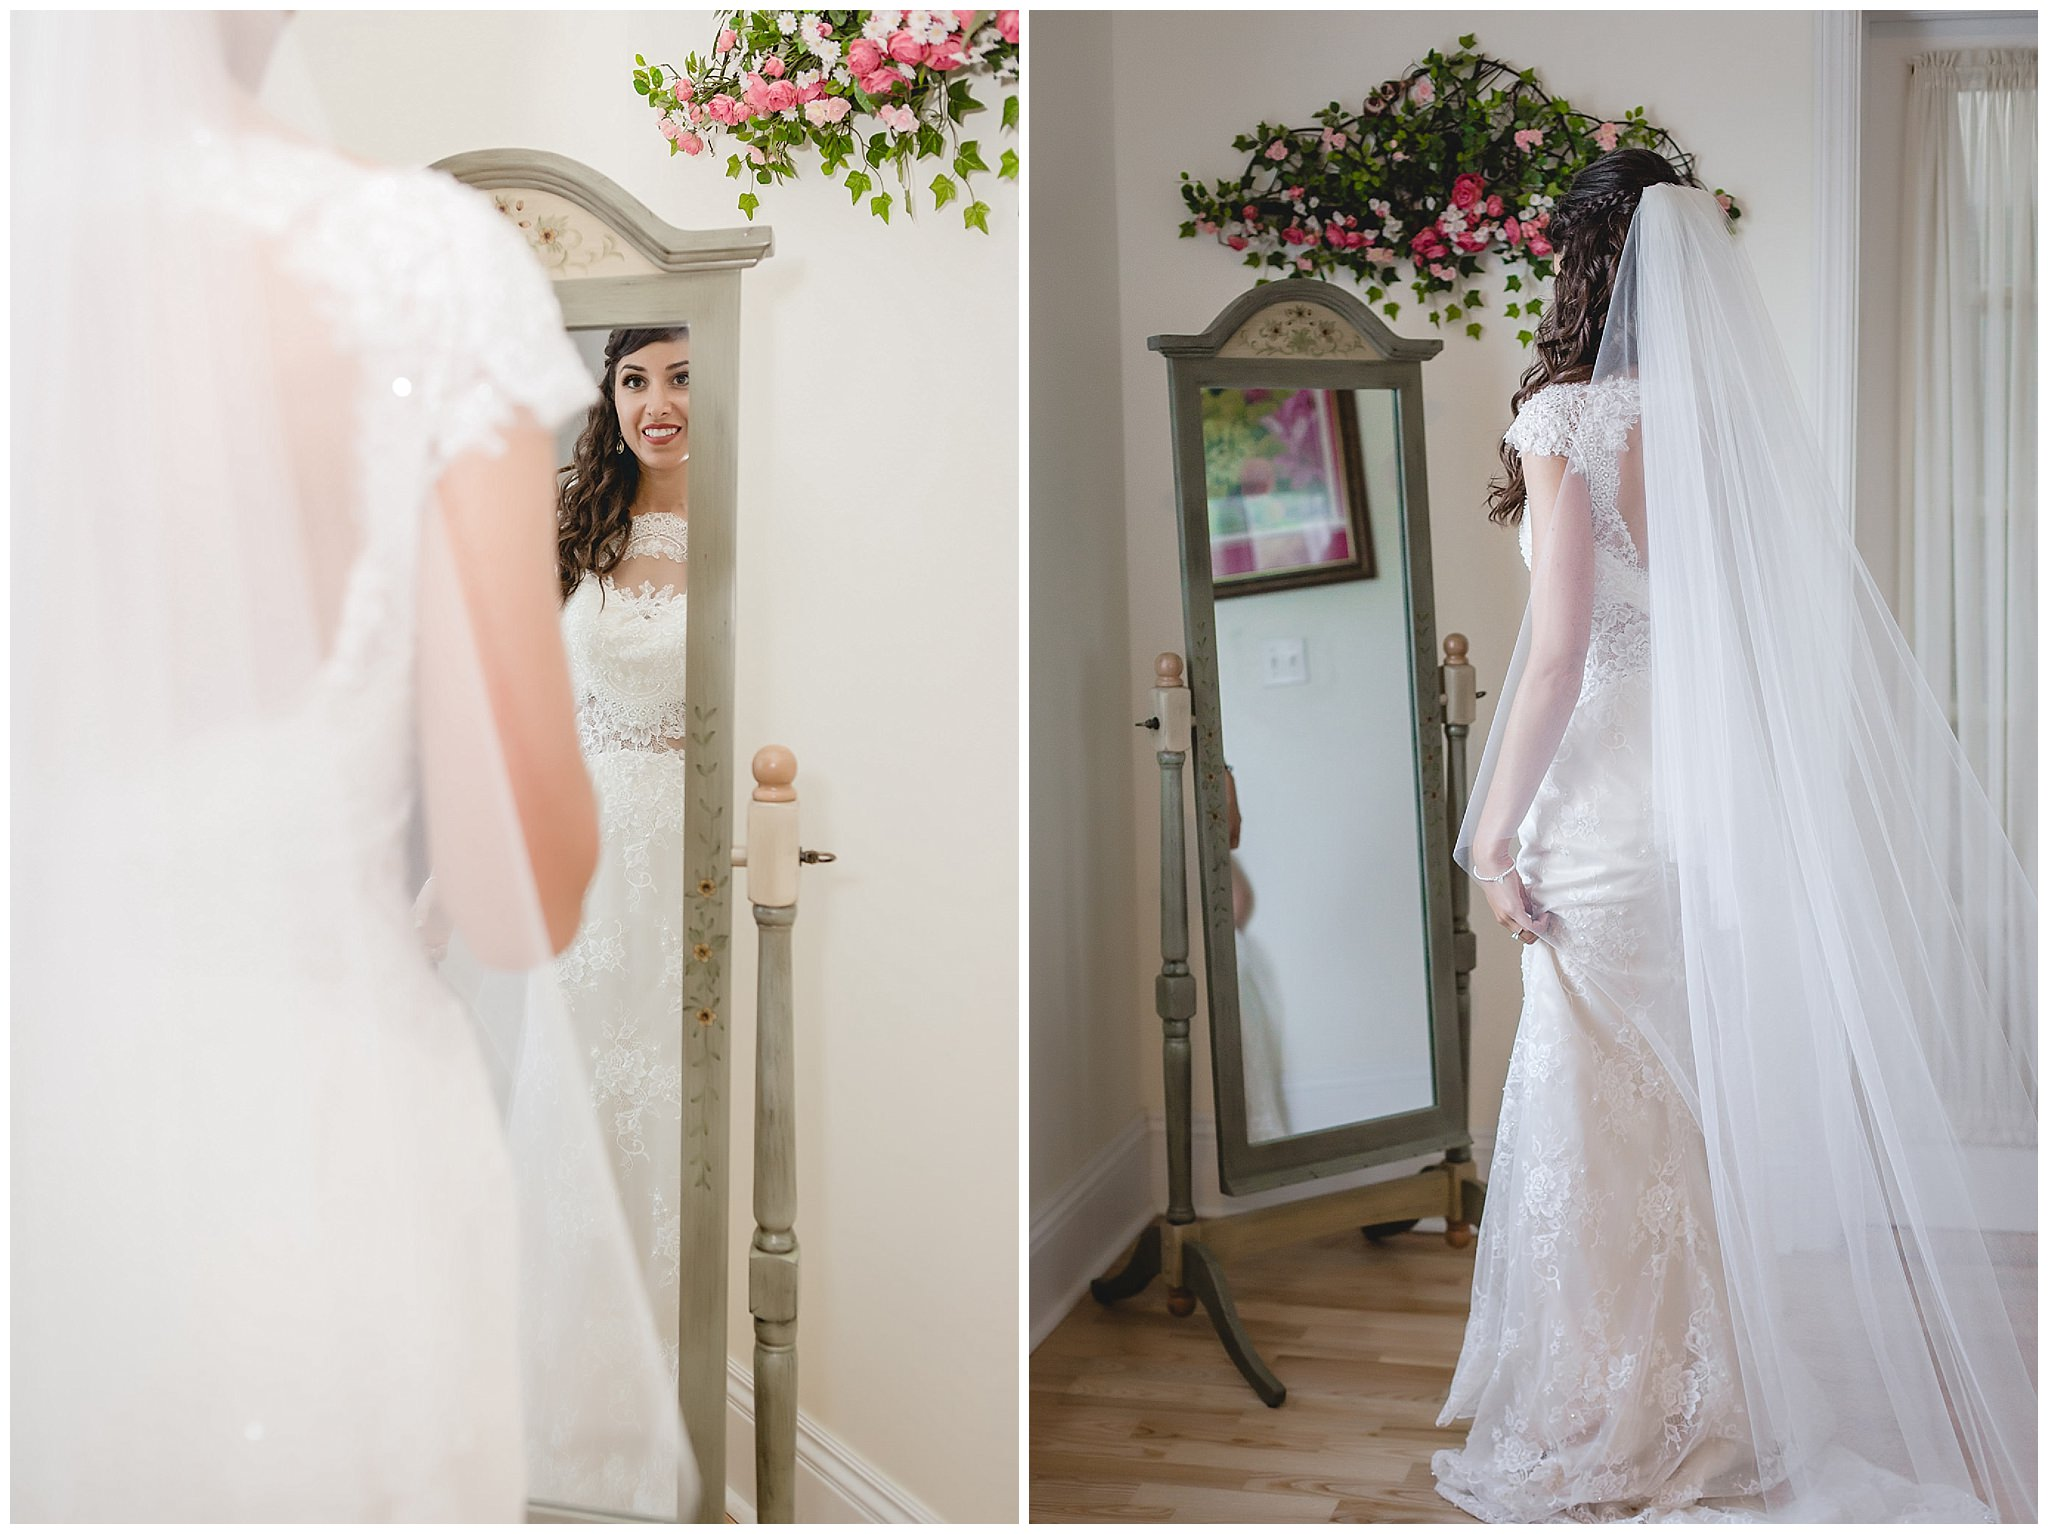 Bride looks at herself in the mirror before her wedding at Greystone Fields